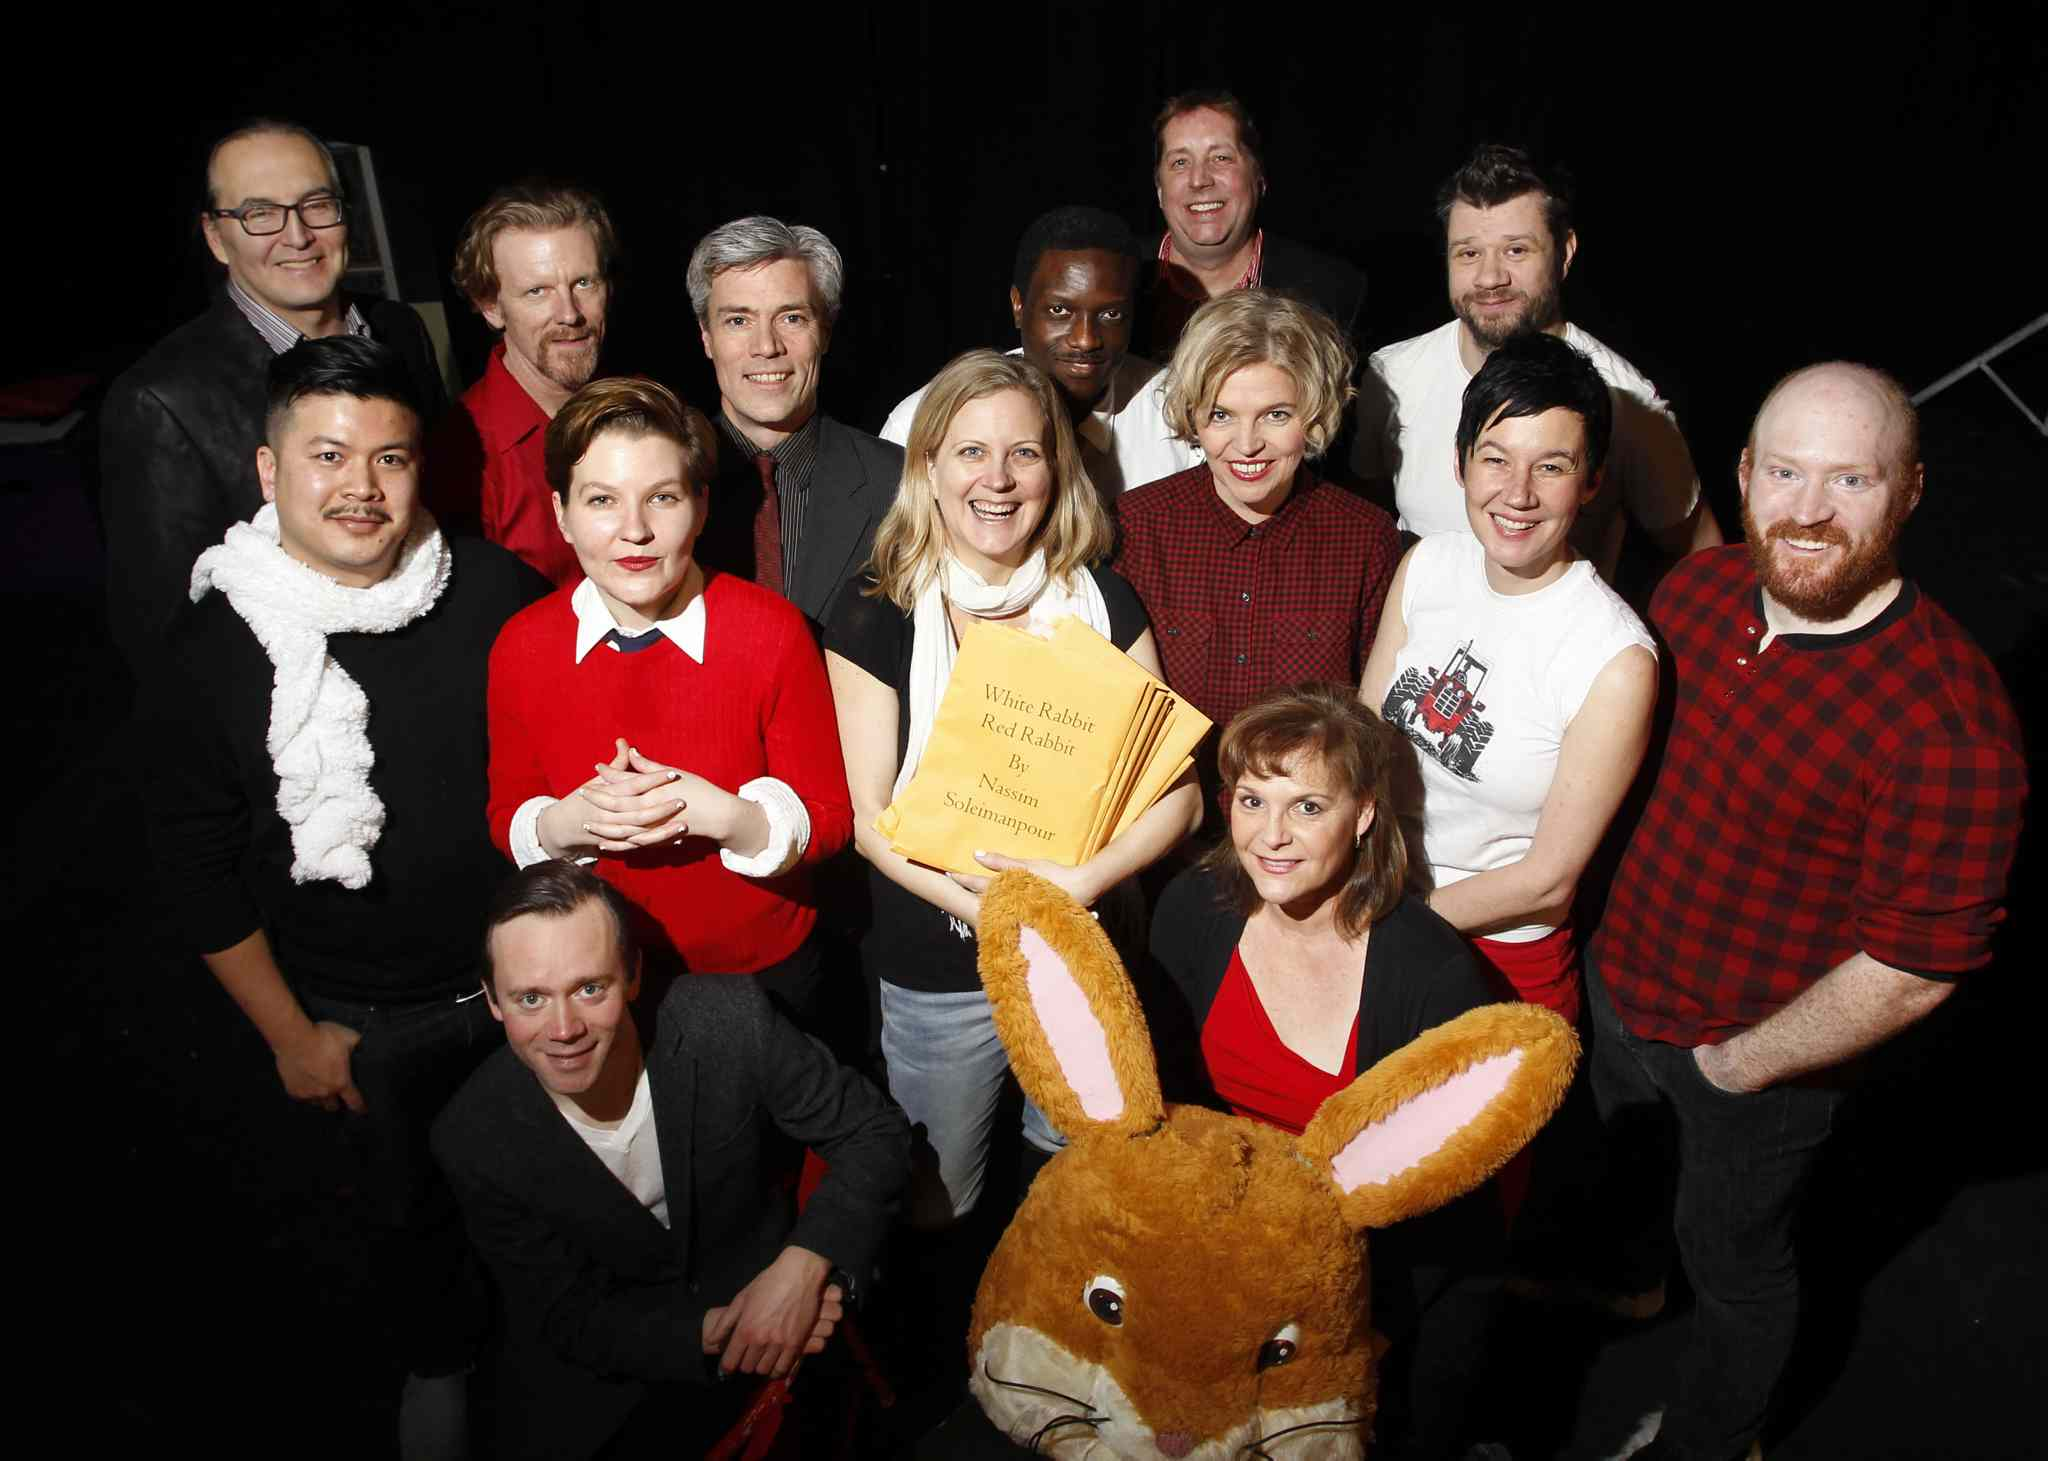 Theatre Projects Manitoba is staging White Rabbit, Red Rabbit.  Artistic director Ardith Boxall (centre) holding the scripts, while surrounded by some of the actors taking part in the production. From left to right in front are Tom Keenan and Janice Skene; second row: Loc Lu, Sarah Constible, Sharon Bajer, Shawna Dempsey and Carson Nattress; back row: Ian Ross, Arne McPherson, Gord Tanner,  Bathelemy Bolivar, Leith Clark and  Stephen Sim. Every night a lone actor will be given the script they have never seen before and then perform it on the spot.